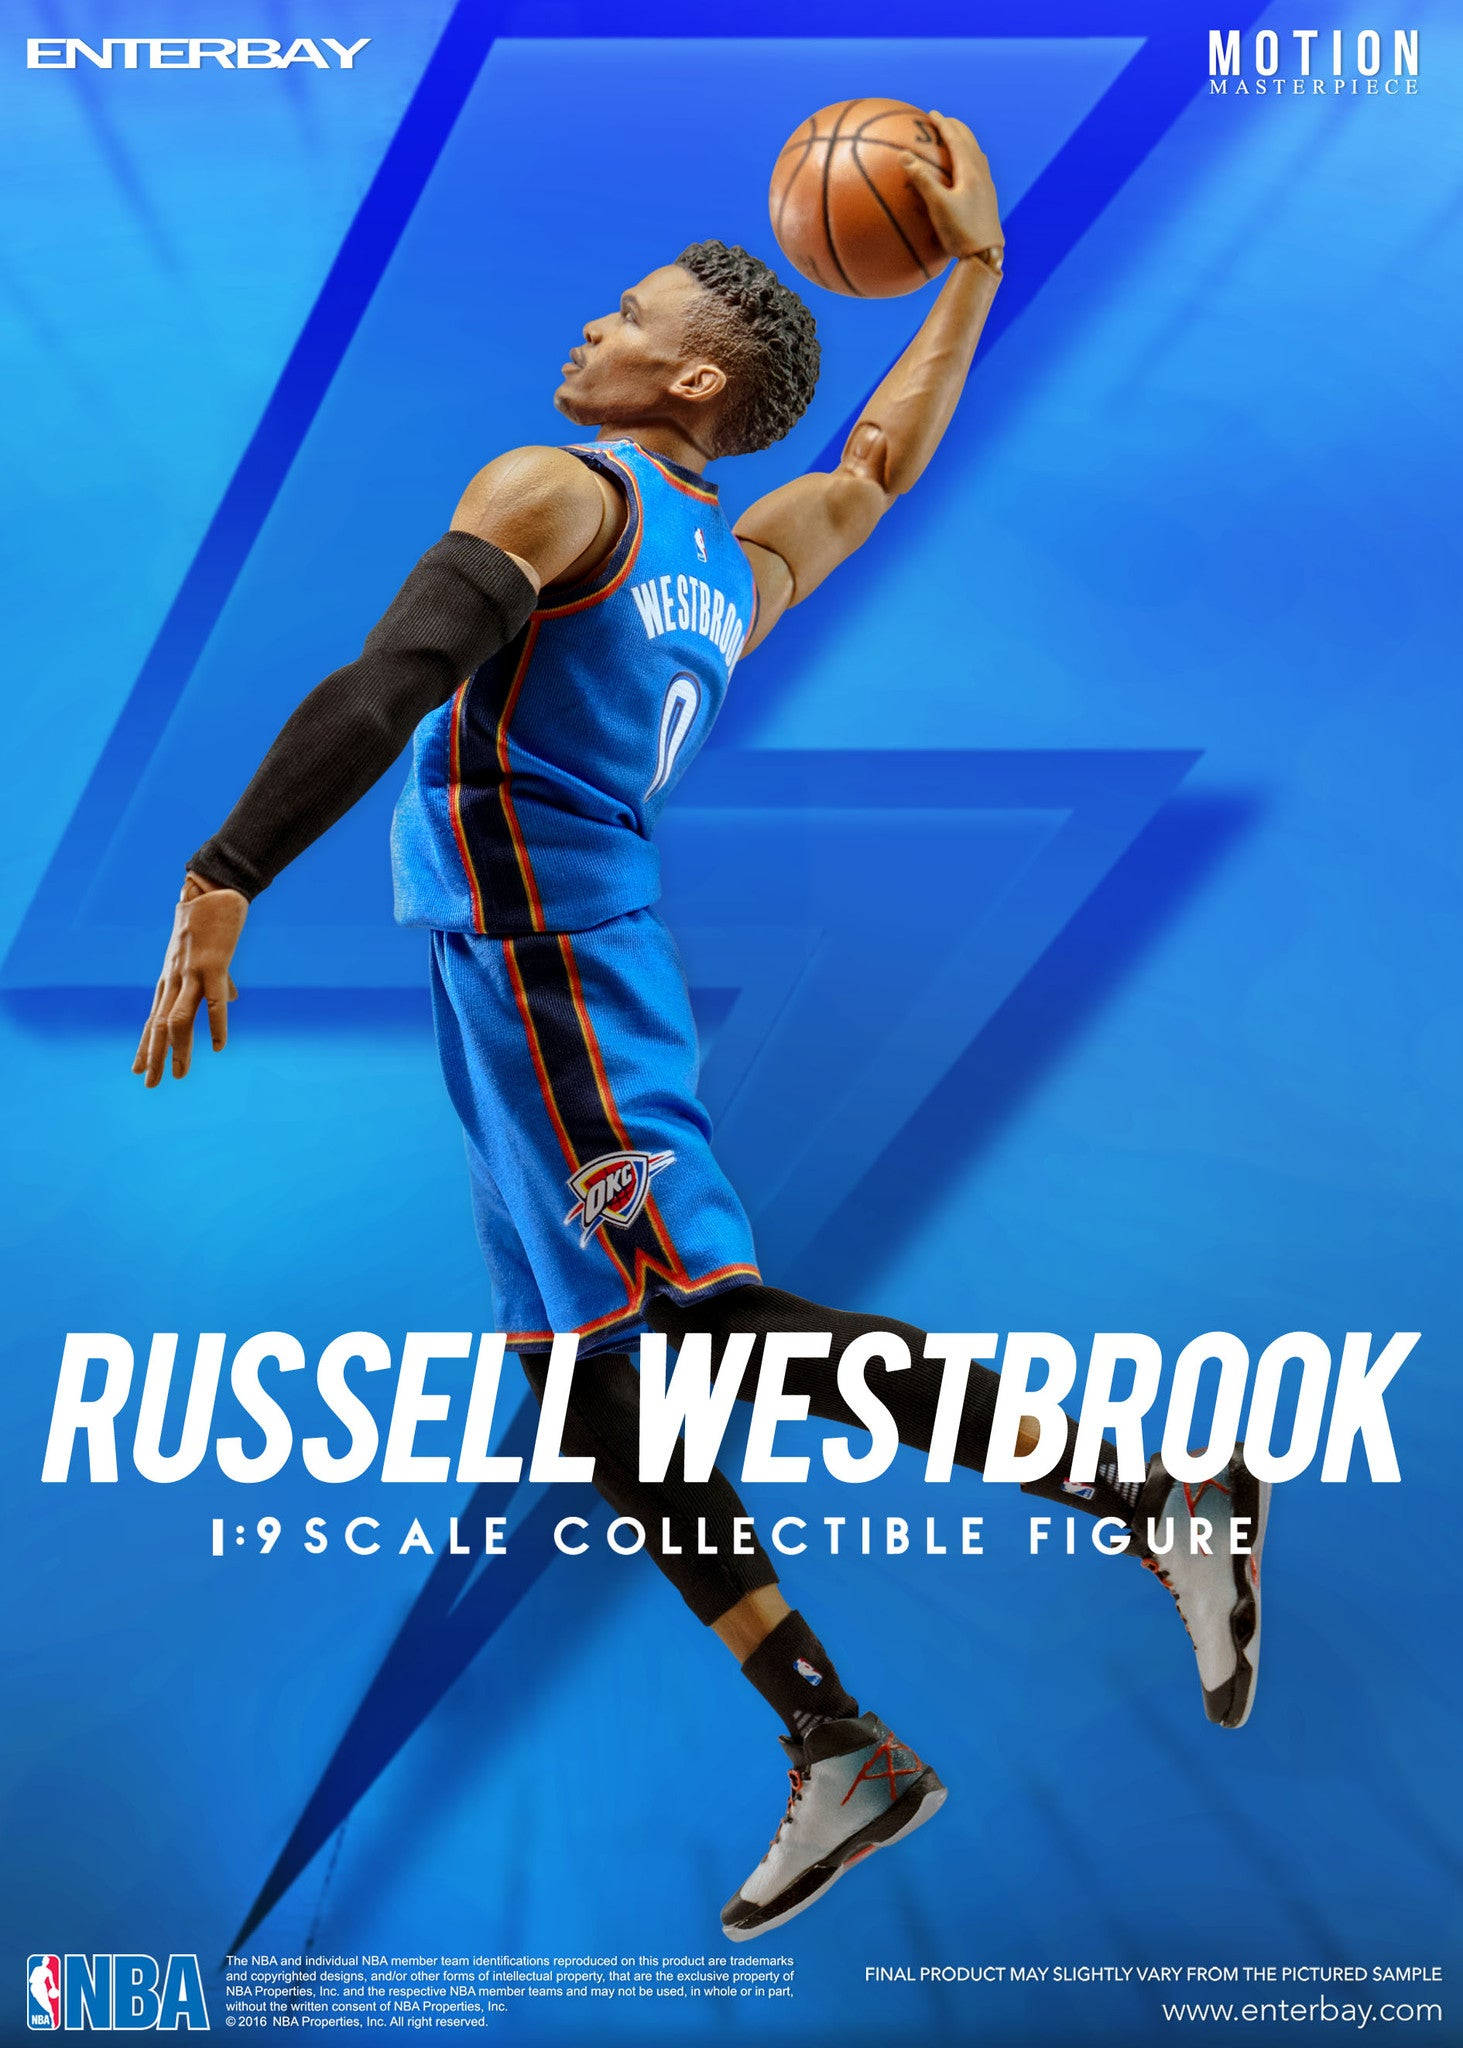 Nba Collection Russell Westbrook 1 9 Scale Figurine